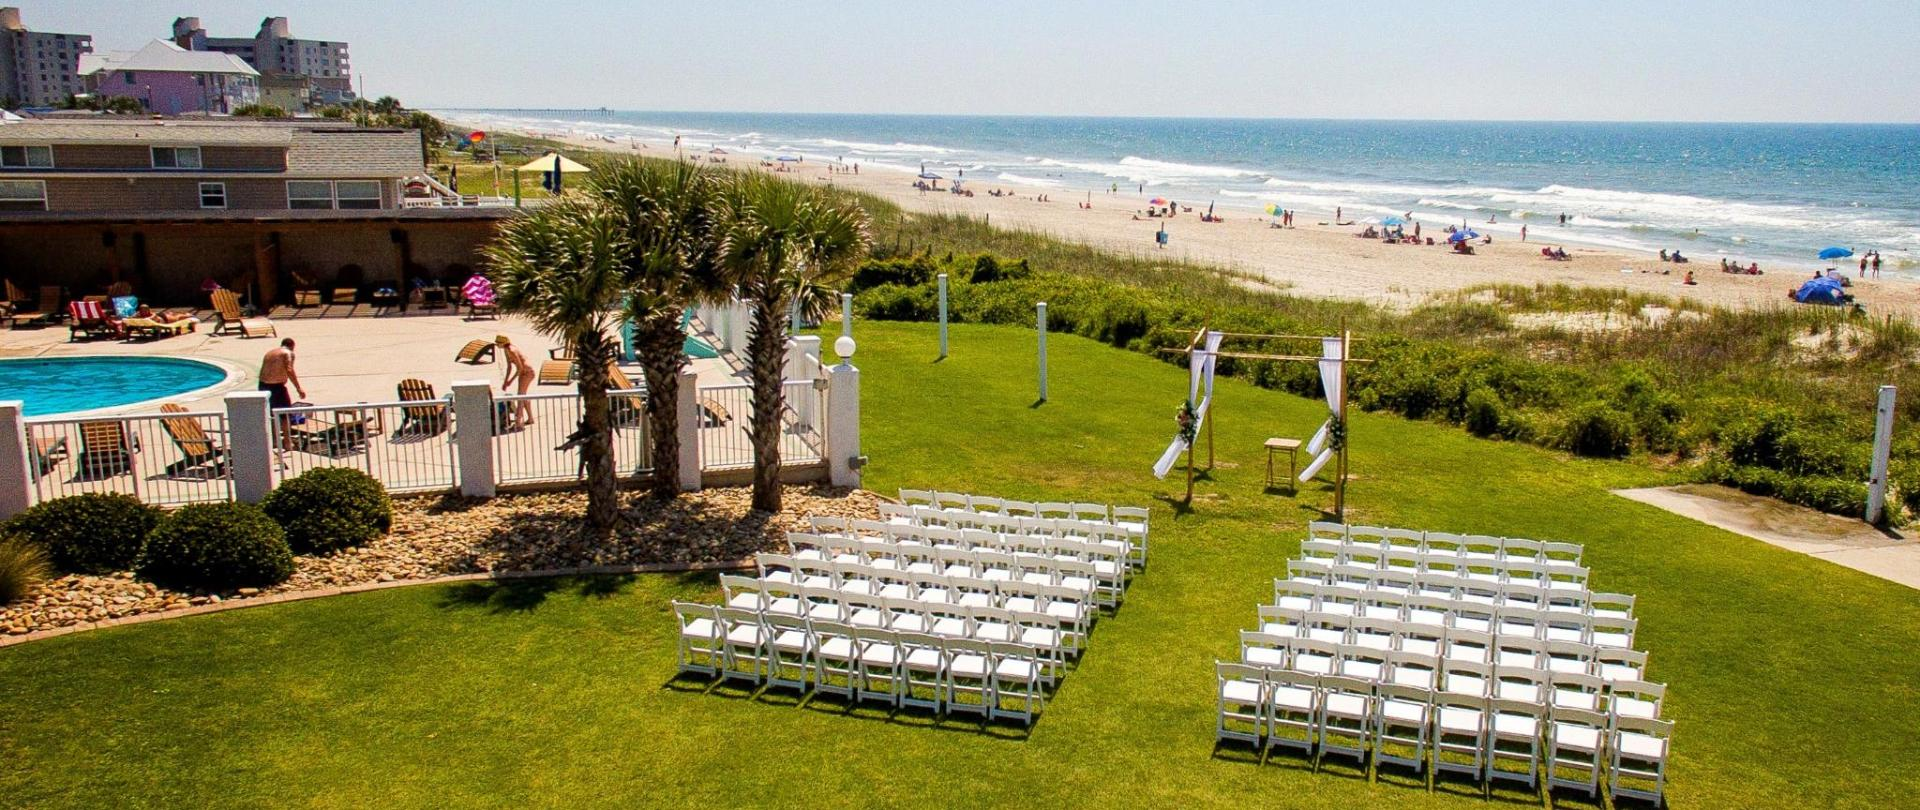 Islander Hotel Resort Oceanfront Emerald Isle Nc Us United States Of America